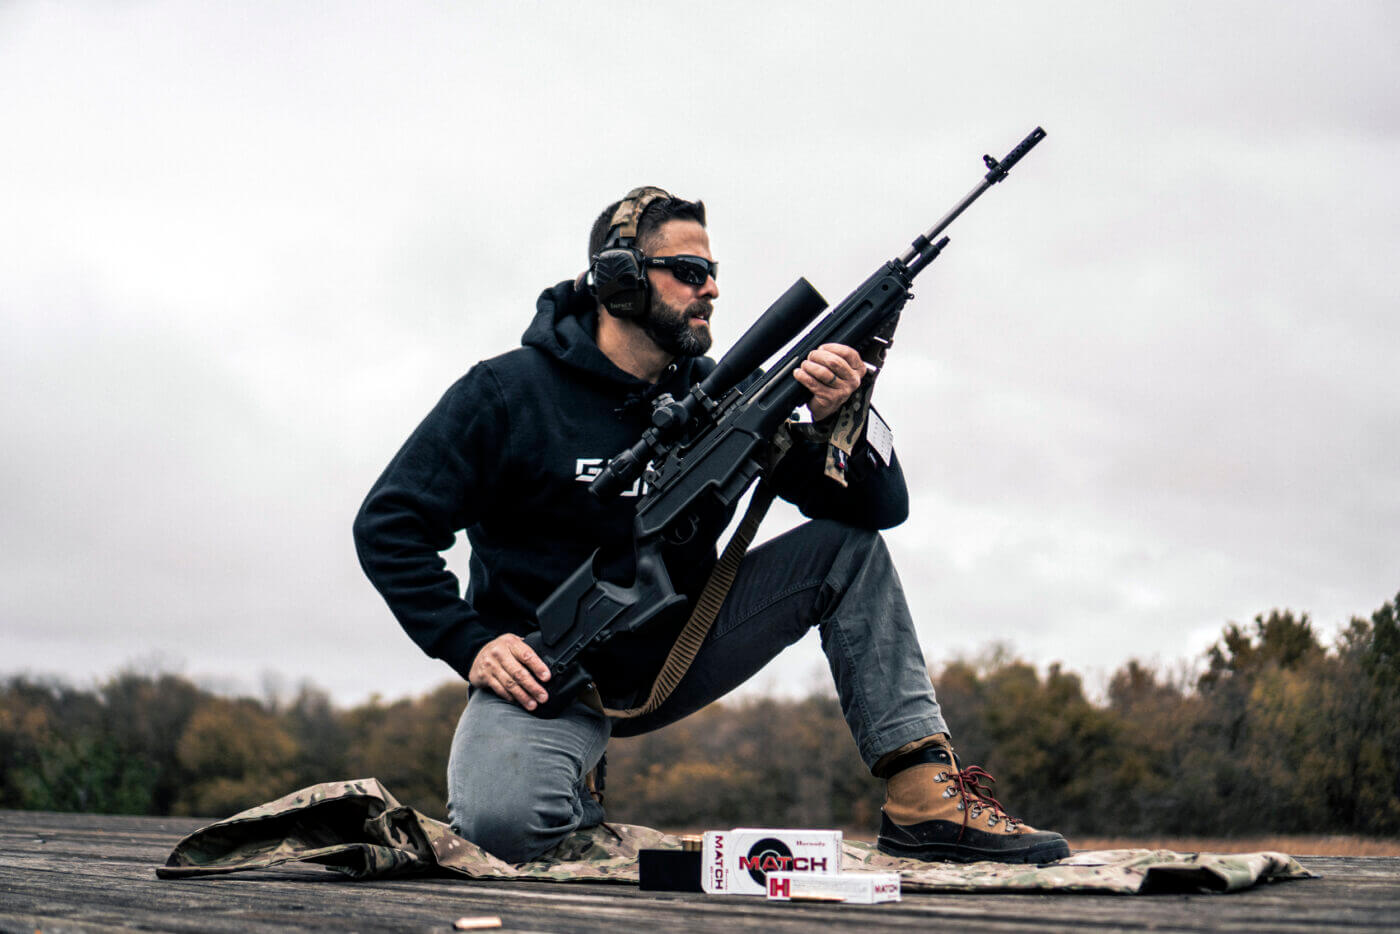 Armageddon Gear and M1A Loaded Precision Rifle in 6.5 Creedmoor